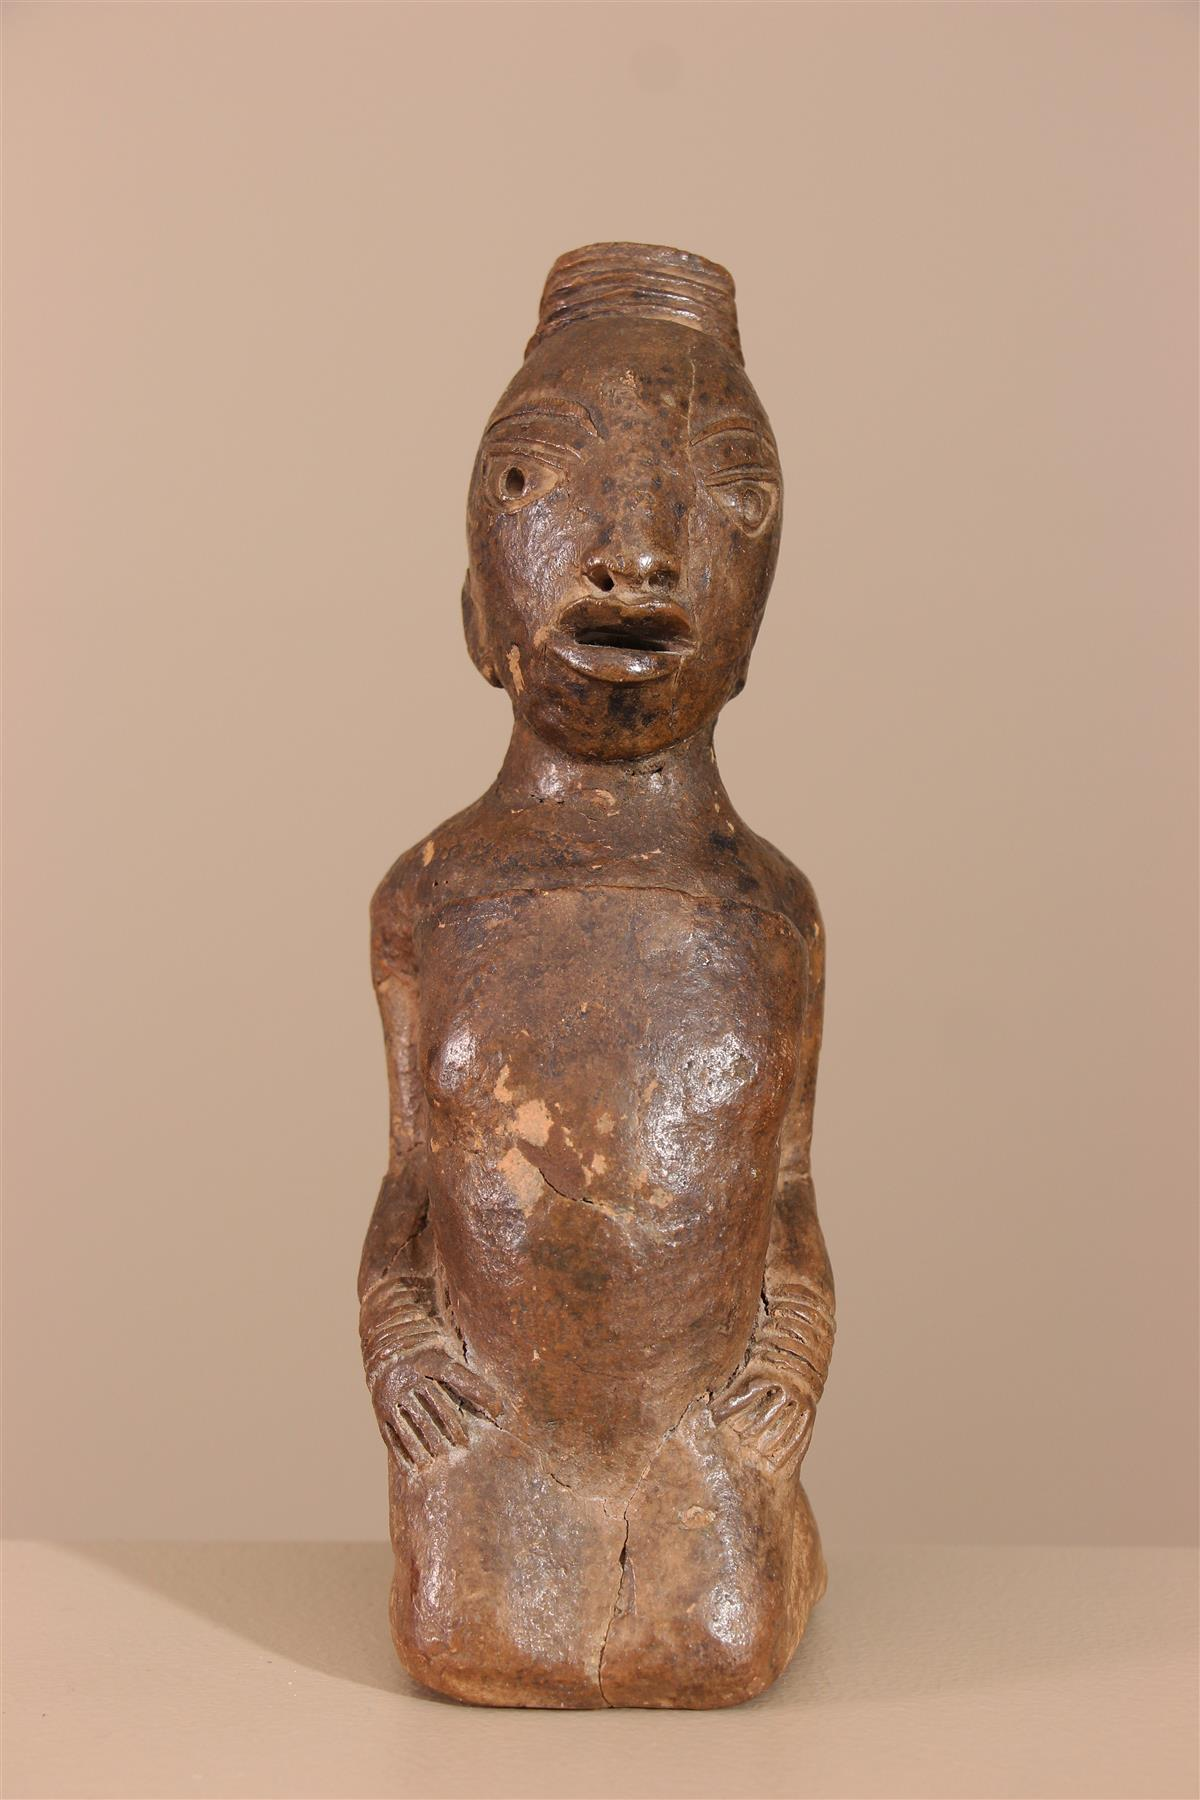 Statuette type Nok - Déco africaine - Art africain traditionnel